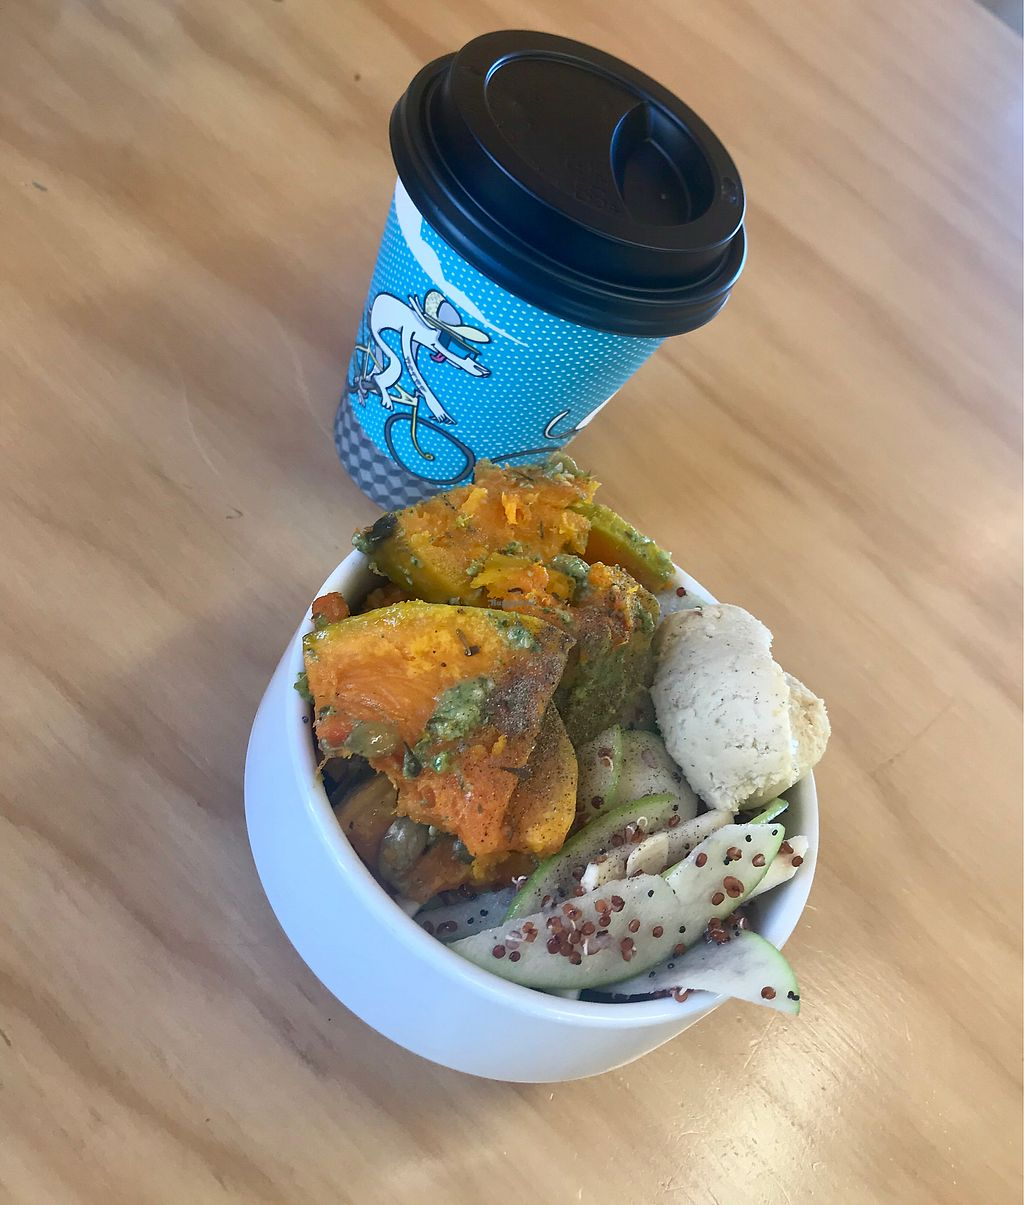 """Photo of Ramble + Ritual  by <a href=""""/members/profile/LenaHaapala"""">LenaHaapala</a> <br/>Salad and flat white for breakfast  <br/> April 11, 2018  - <a href='/contact/abuse/image/80674/383740'>Report</a>"""